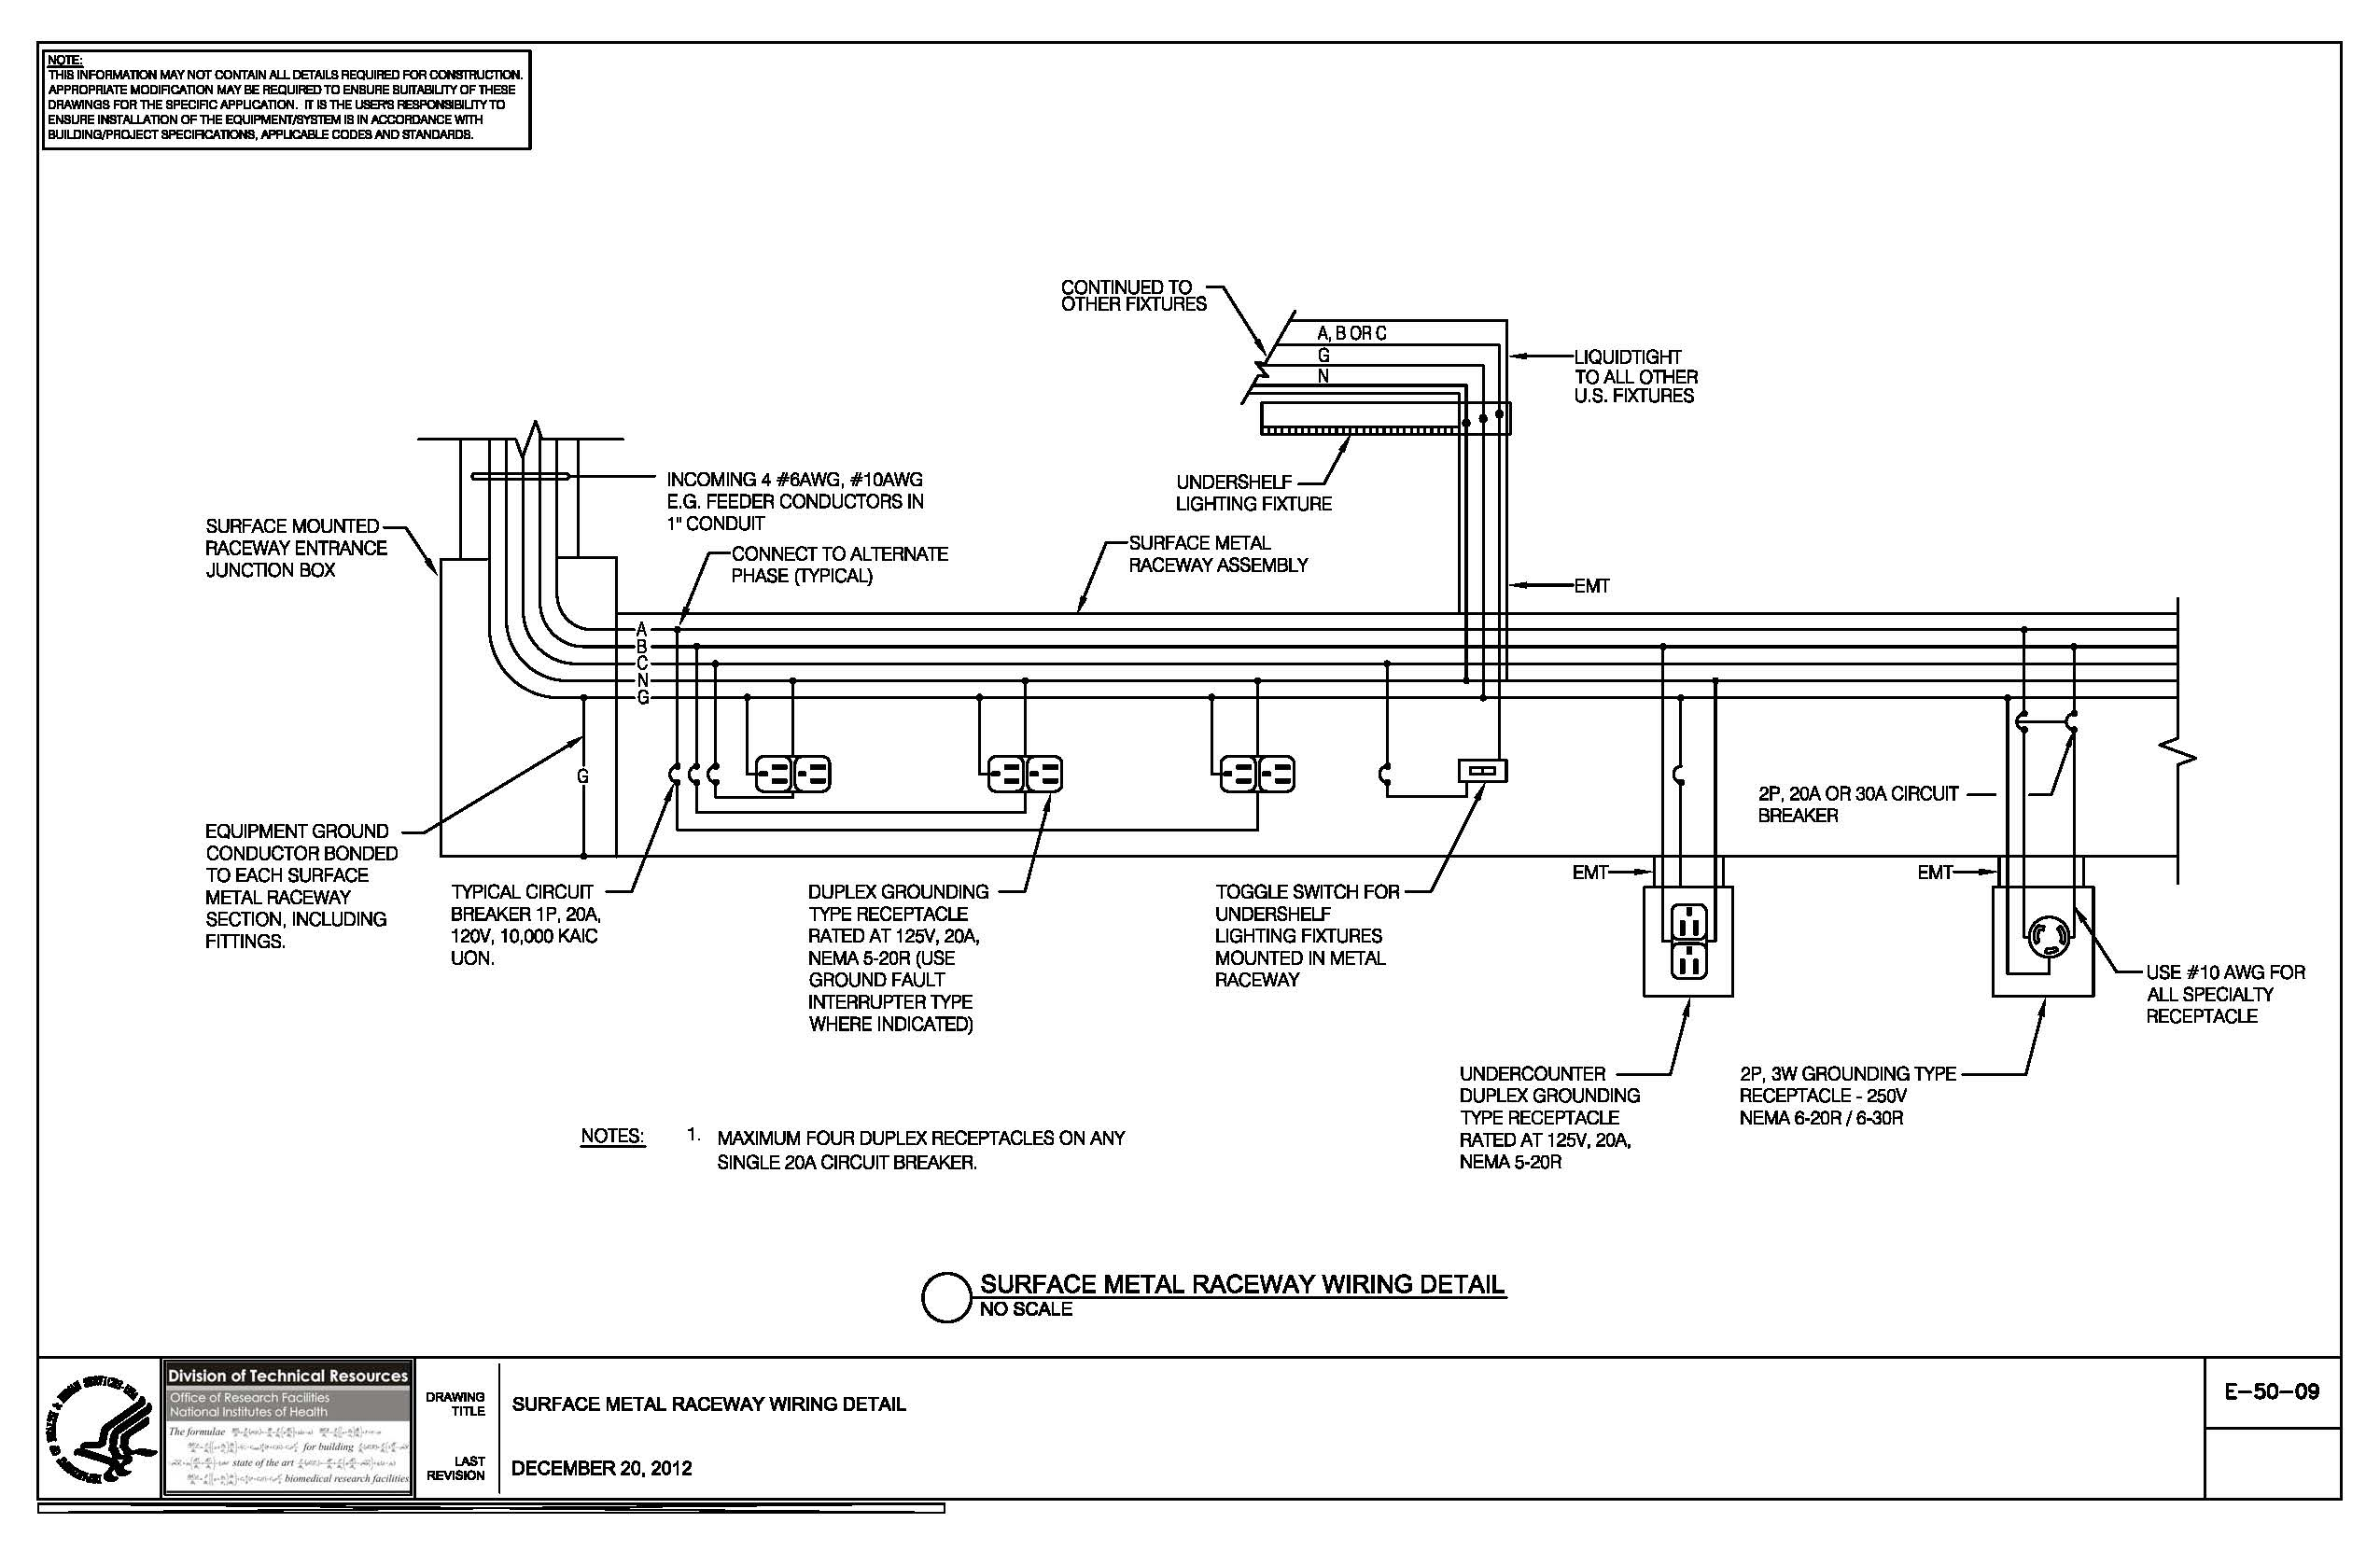 Western Ice Breaker Wiring Diagram Download Sample Circuit Collection Of E 50 09 Surface Metal Raceway Detail